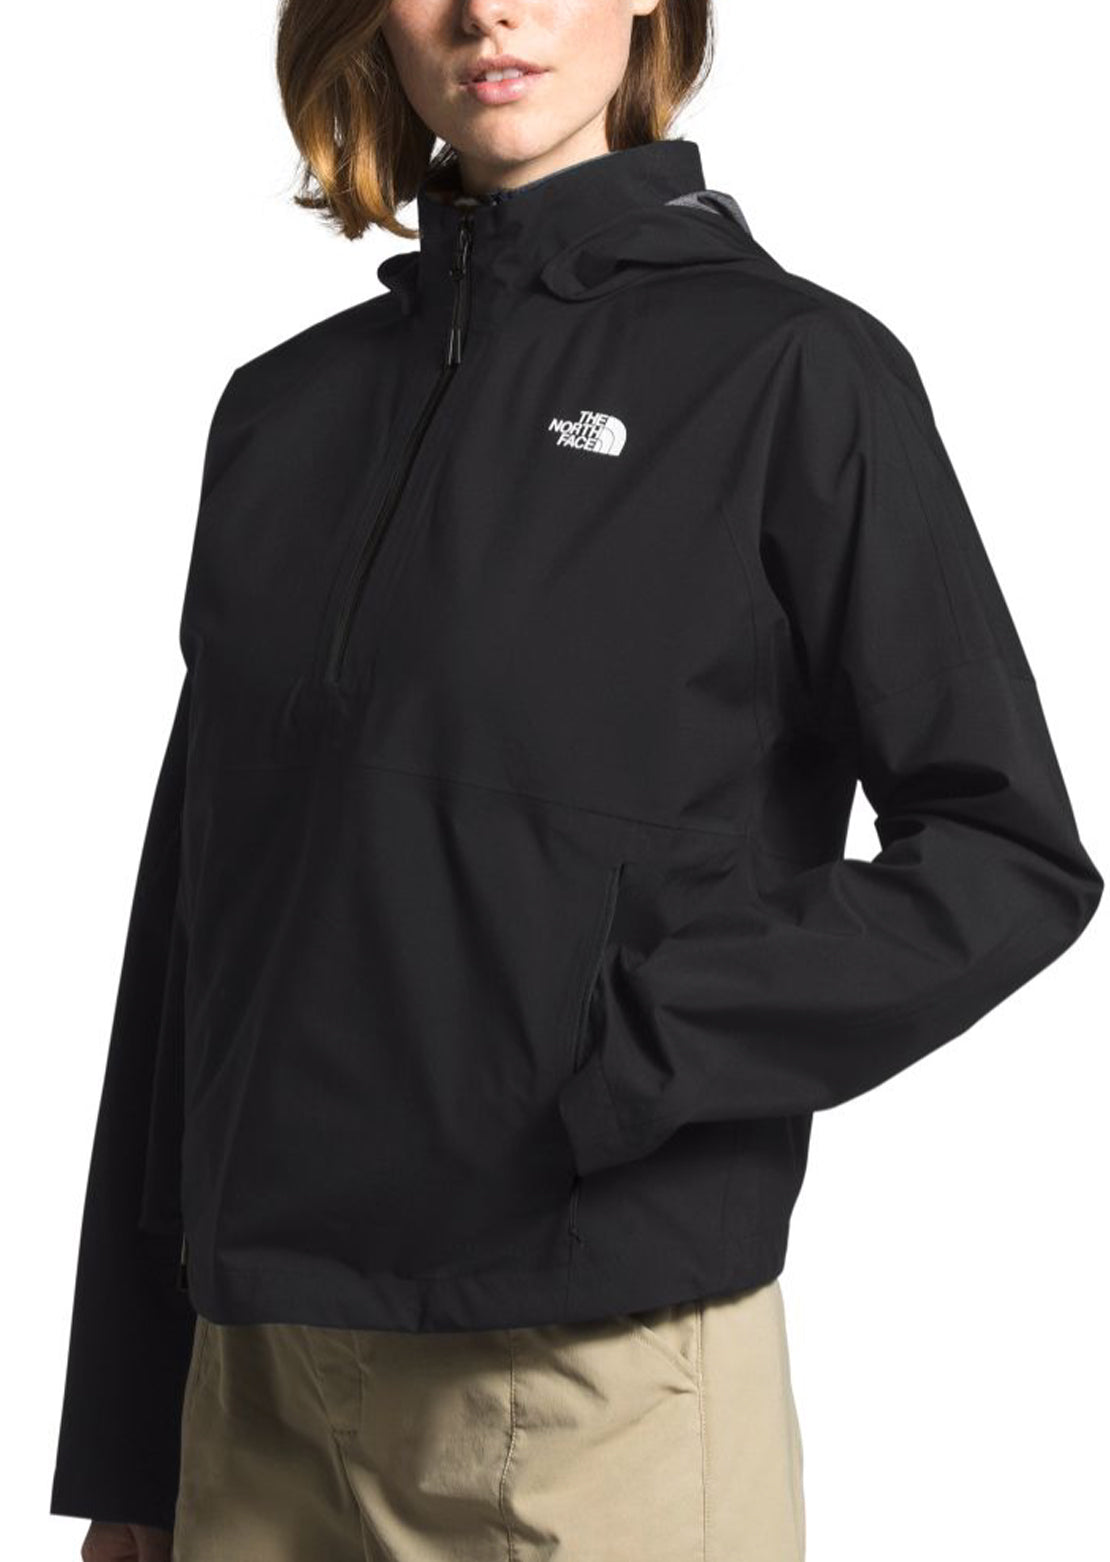 The North Face Women's Arque Active Trail Futurlight Jacket TNF Black